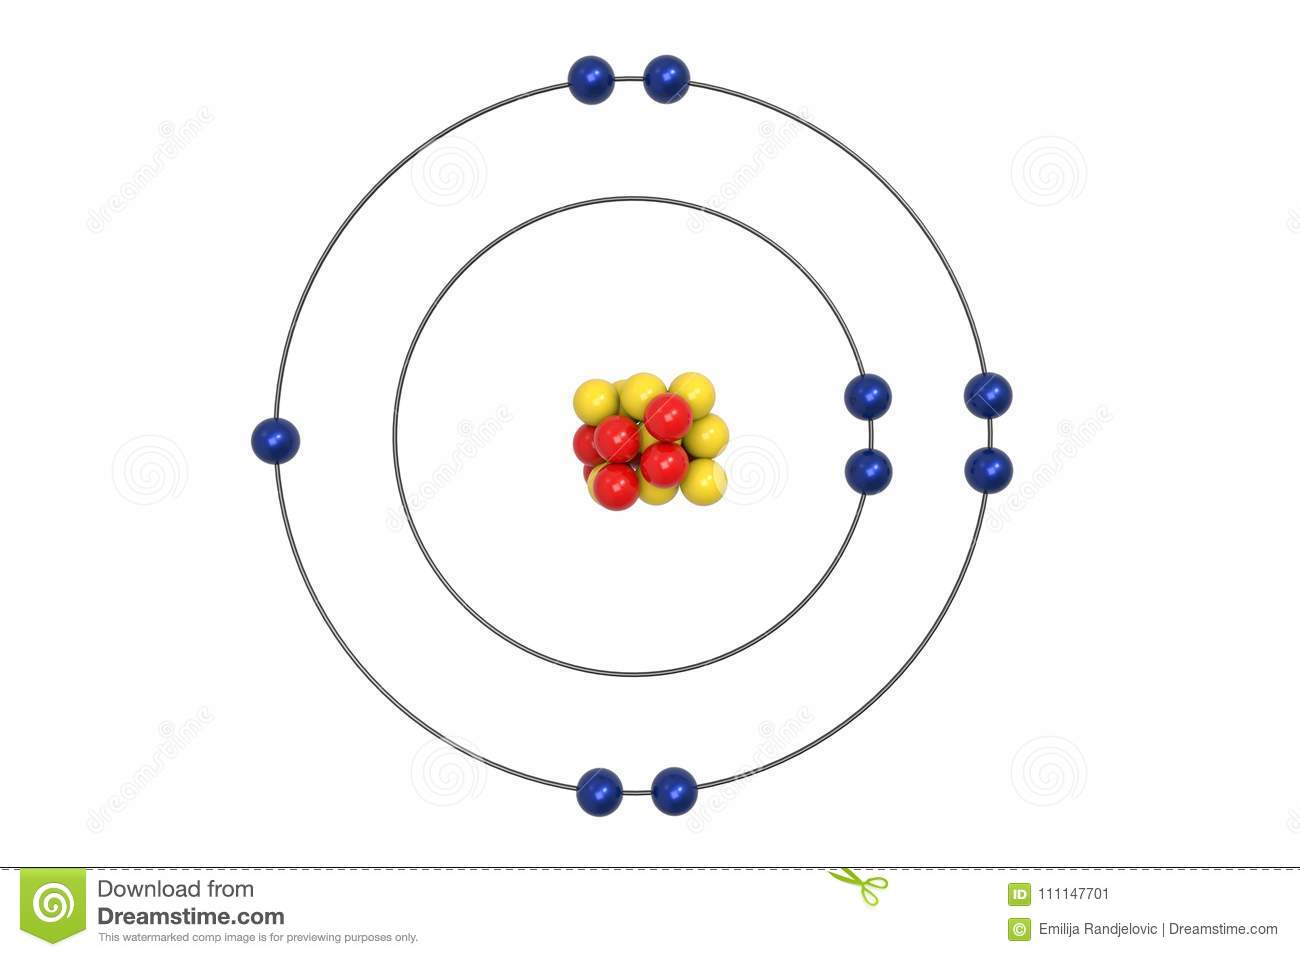 Fluorine Atom Bohr Model With Proton Neutron And Electron